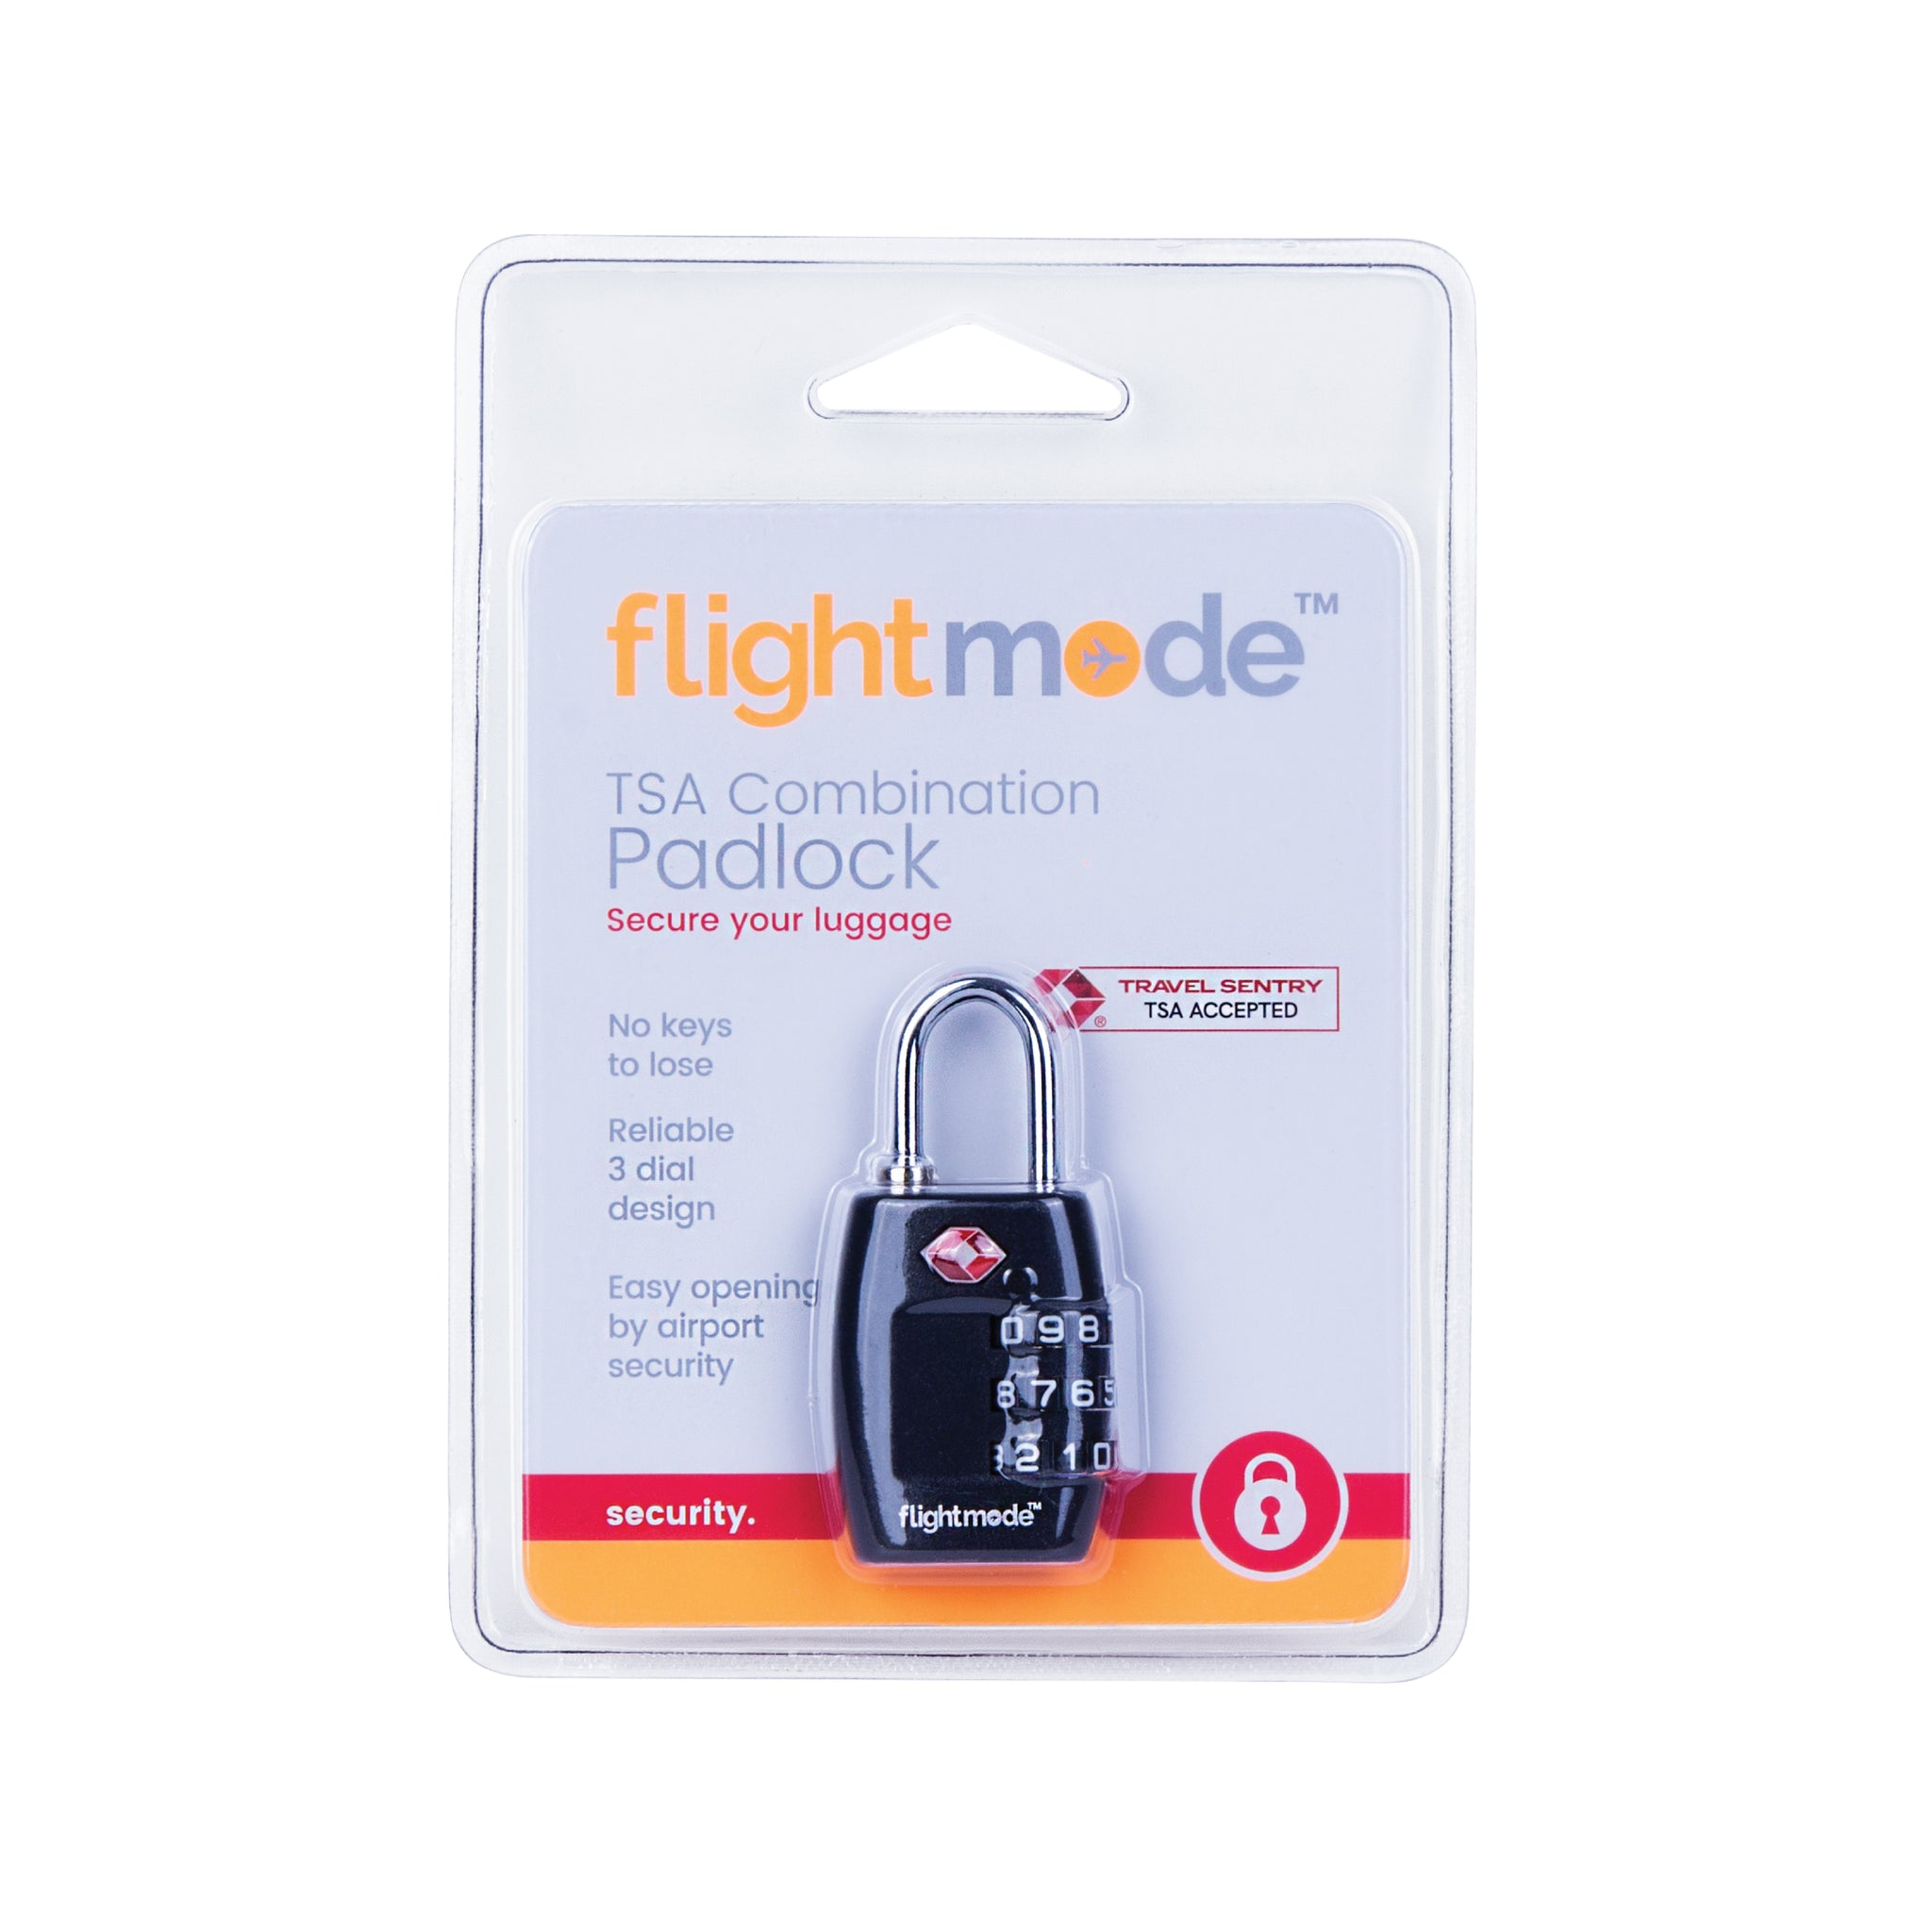 Flightmode TSA 3 Dial Padlock - Using this Travel Sentry® Approved lock allows your luggage to be unlocked and inspected by security authorities without damage. No keys to lose, easy to set using a code of your choice. Deter would-be bag thefts with brutalist composition Solid 12mm compact case construction Lightweight 28gm body while still resistant to bag tampering Fits most bag and luggage zippers Ideal for; luggage, zippered bags, backpacks, overnight bags, and lockers Carry-on compliant design Set you